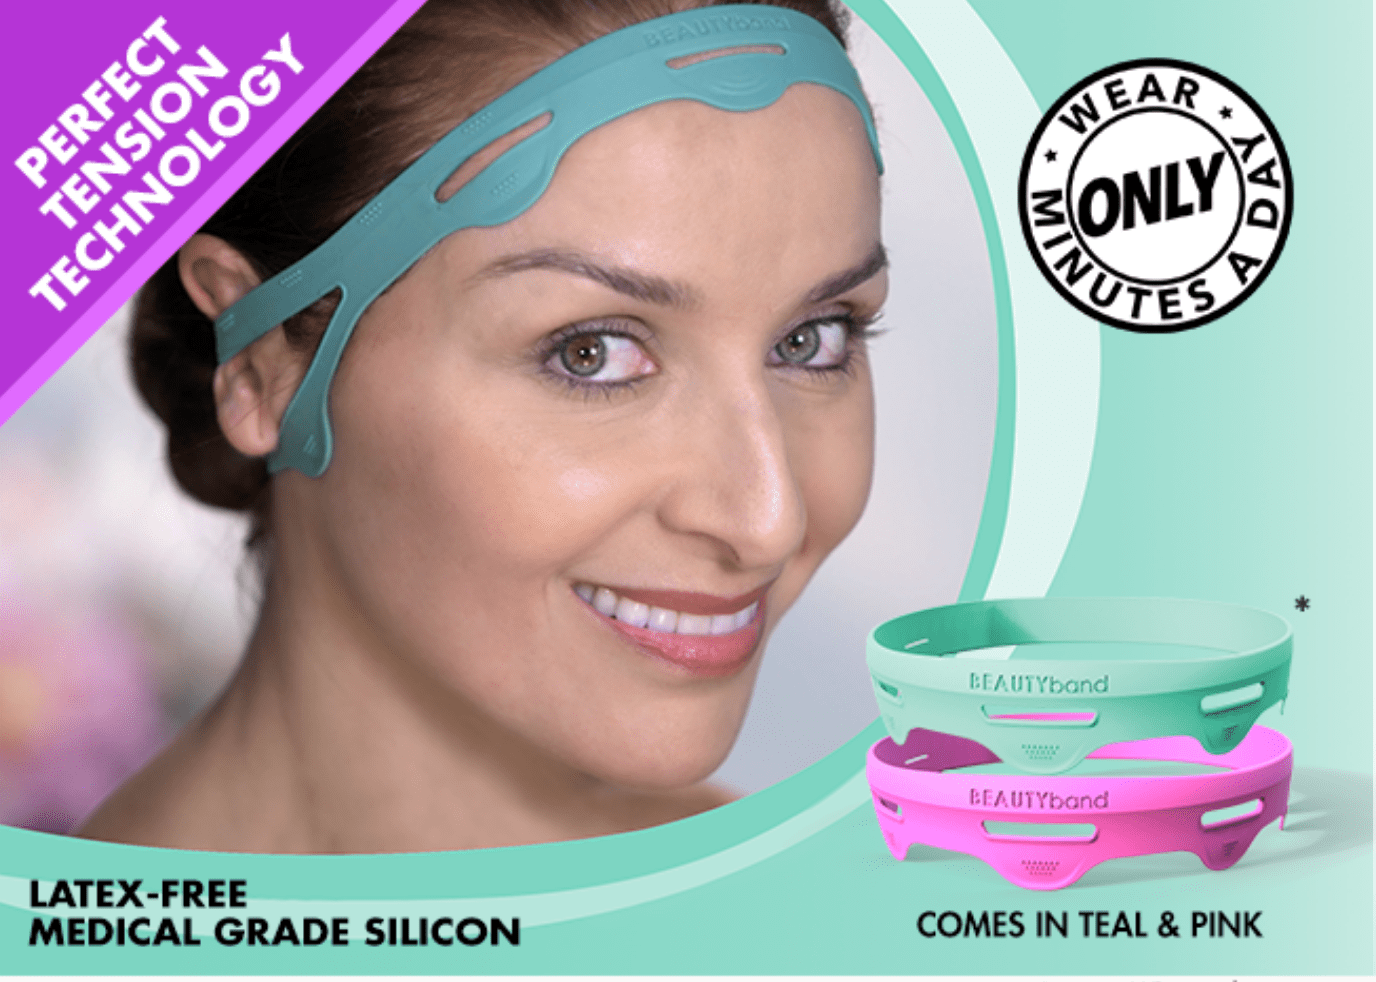 Beautyband Reviews Vivian Tries As Seen On Tv Products Anti Wrinkle Face Wrinkles Anti Aging Facial